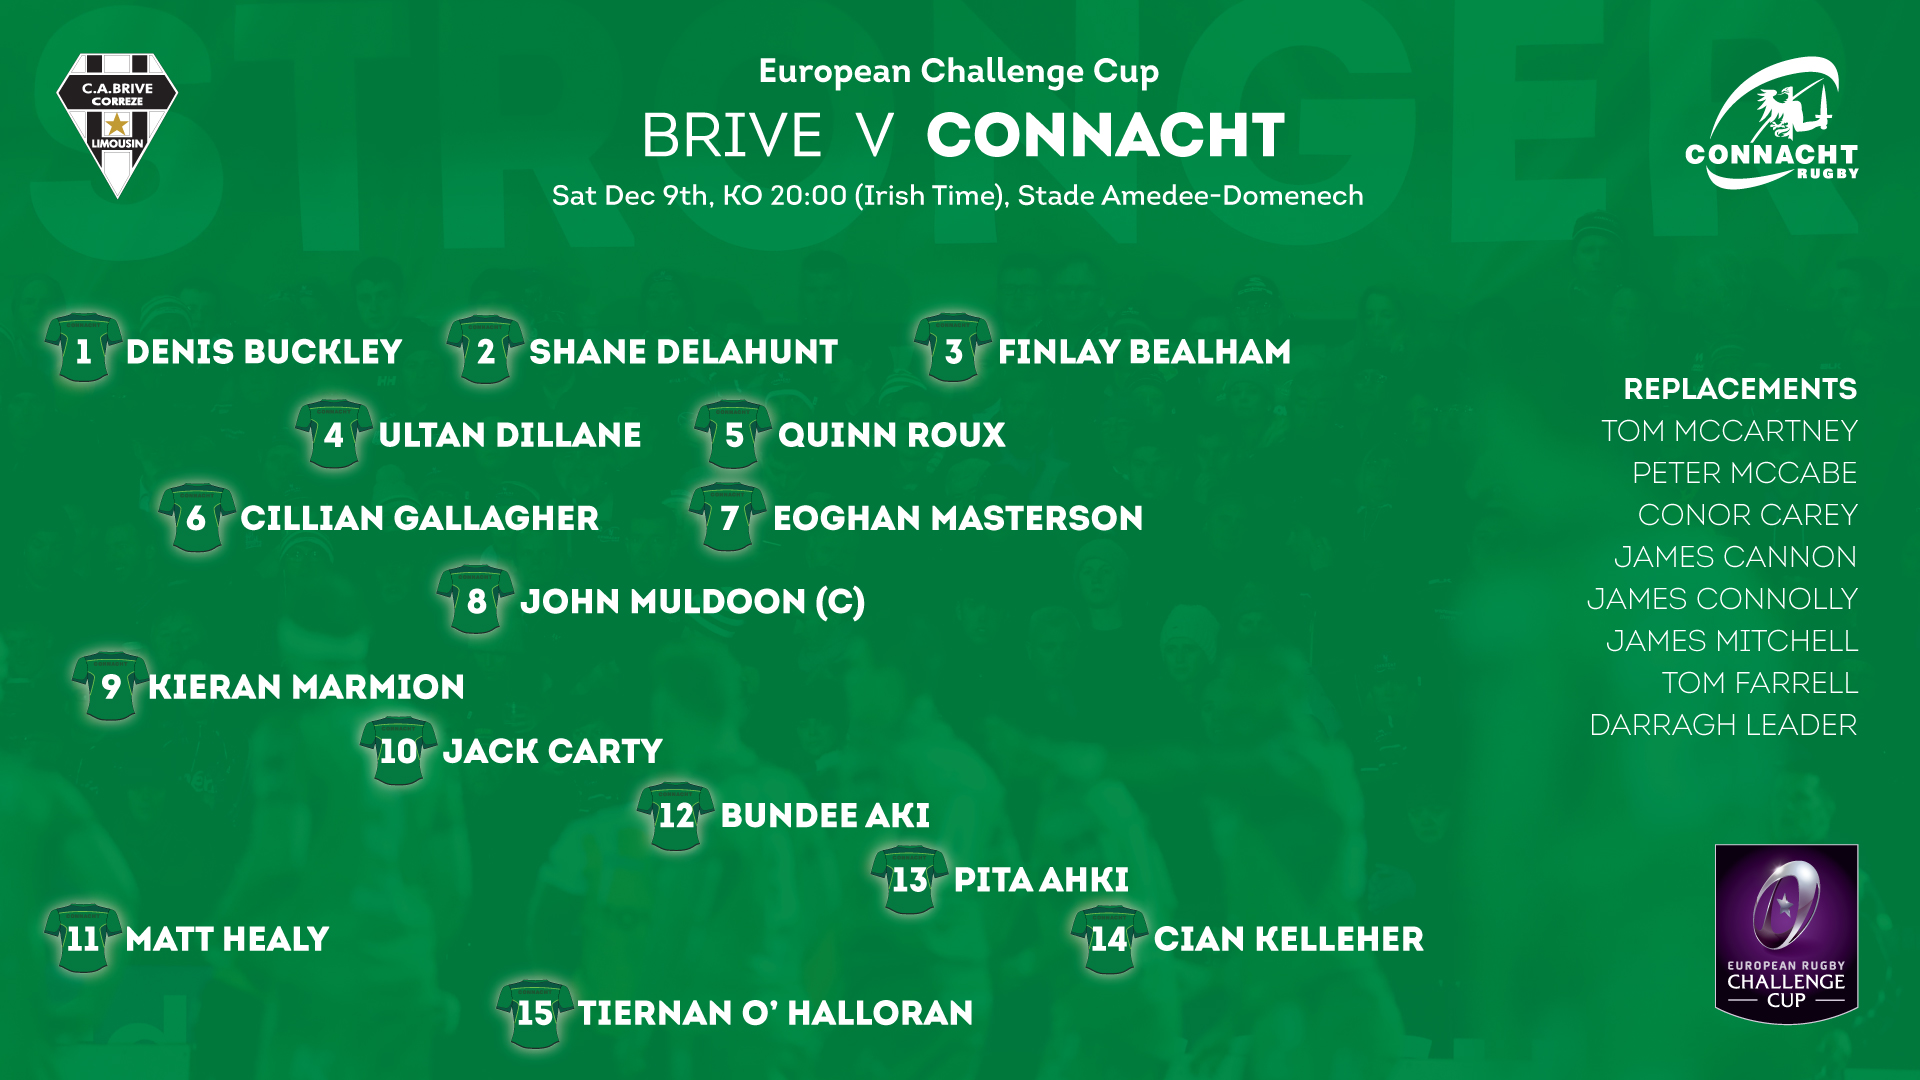 Brive v Connacht